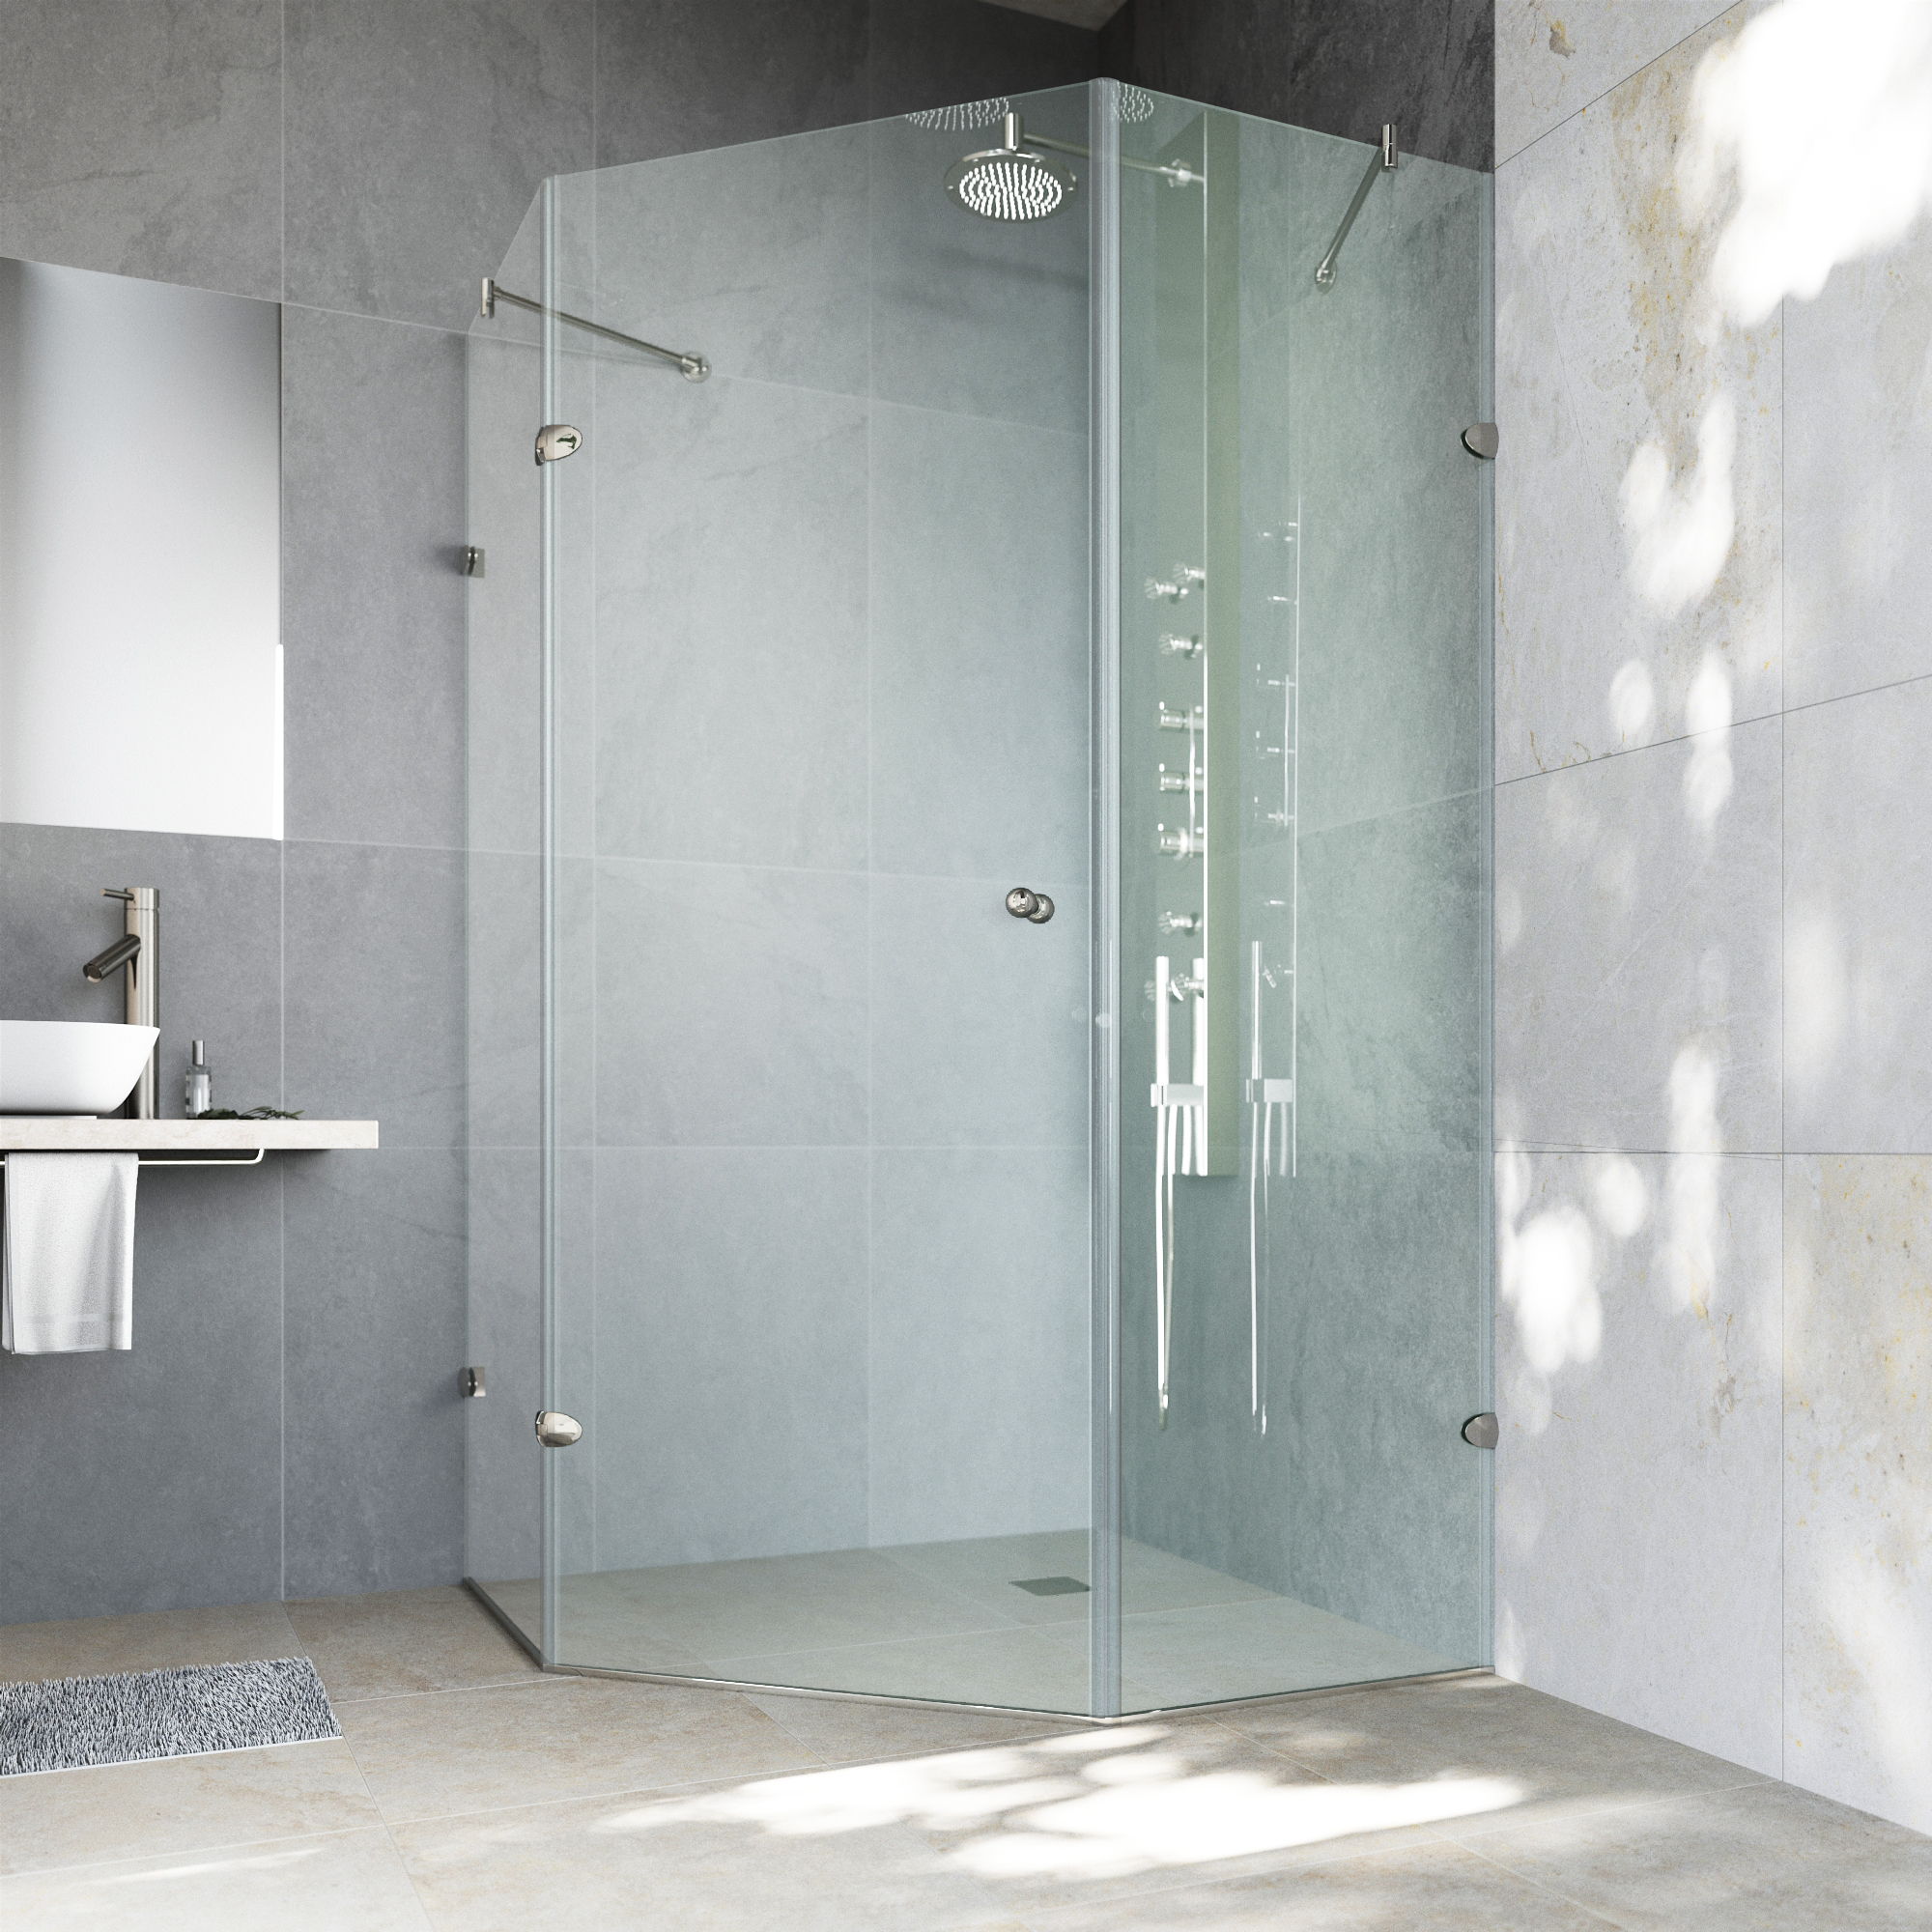 VIGO Verona 38 x 38 Frameless Neo-Angle .375-in. Clear Glass/Brushed Nickel Hardware Shower Enclosure